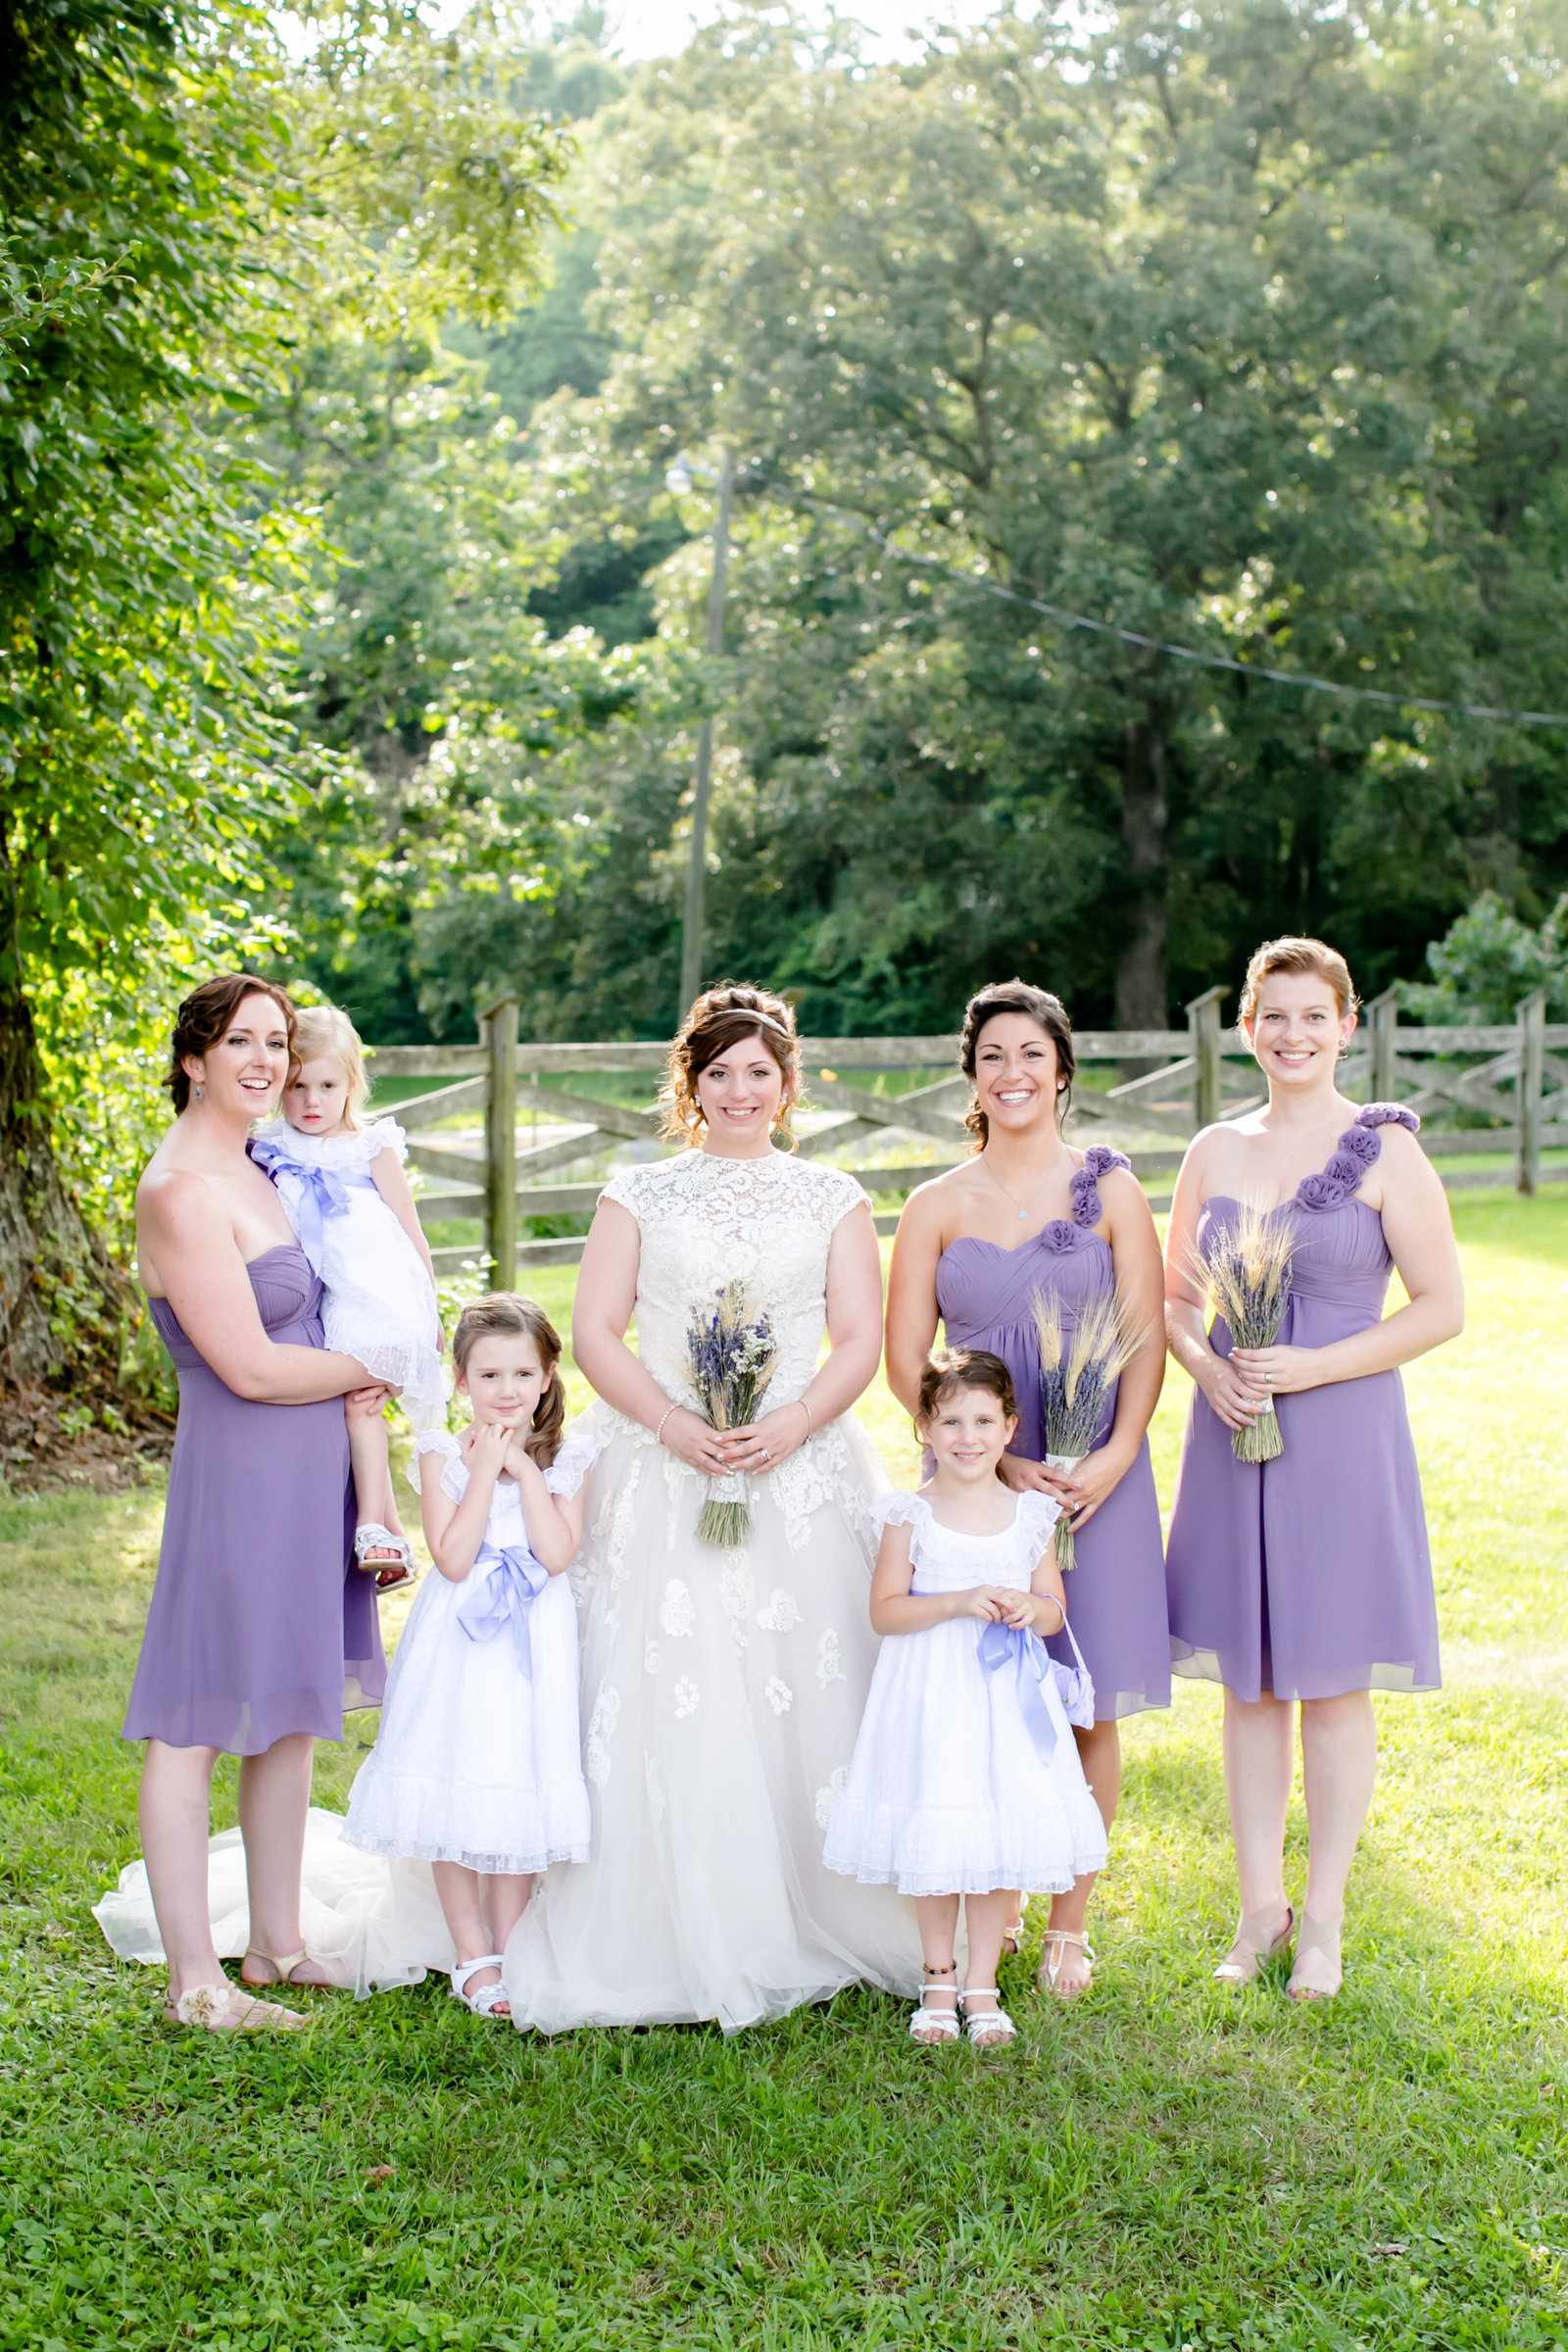 Carley Rehberg Photography - Wedding Photographer - Photo14